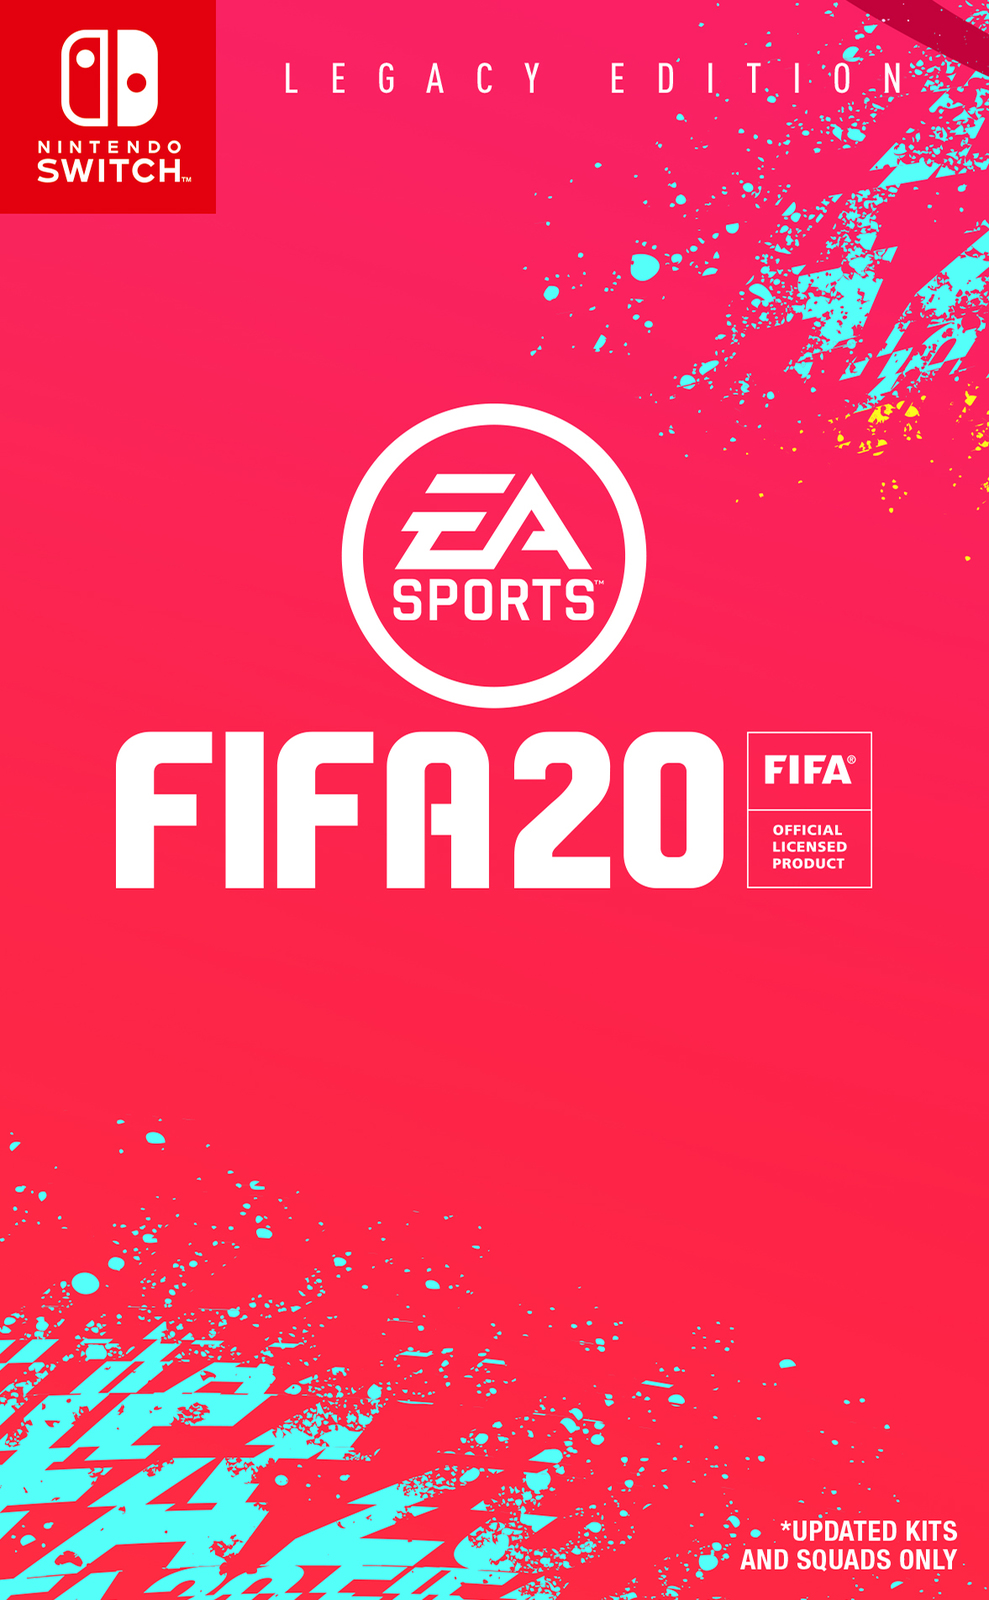 FIFA 20 for Switch image